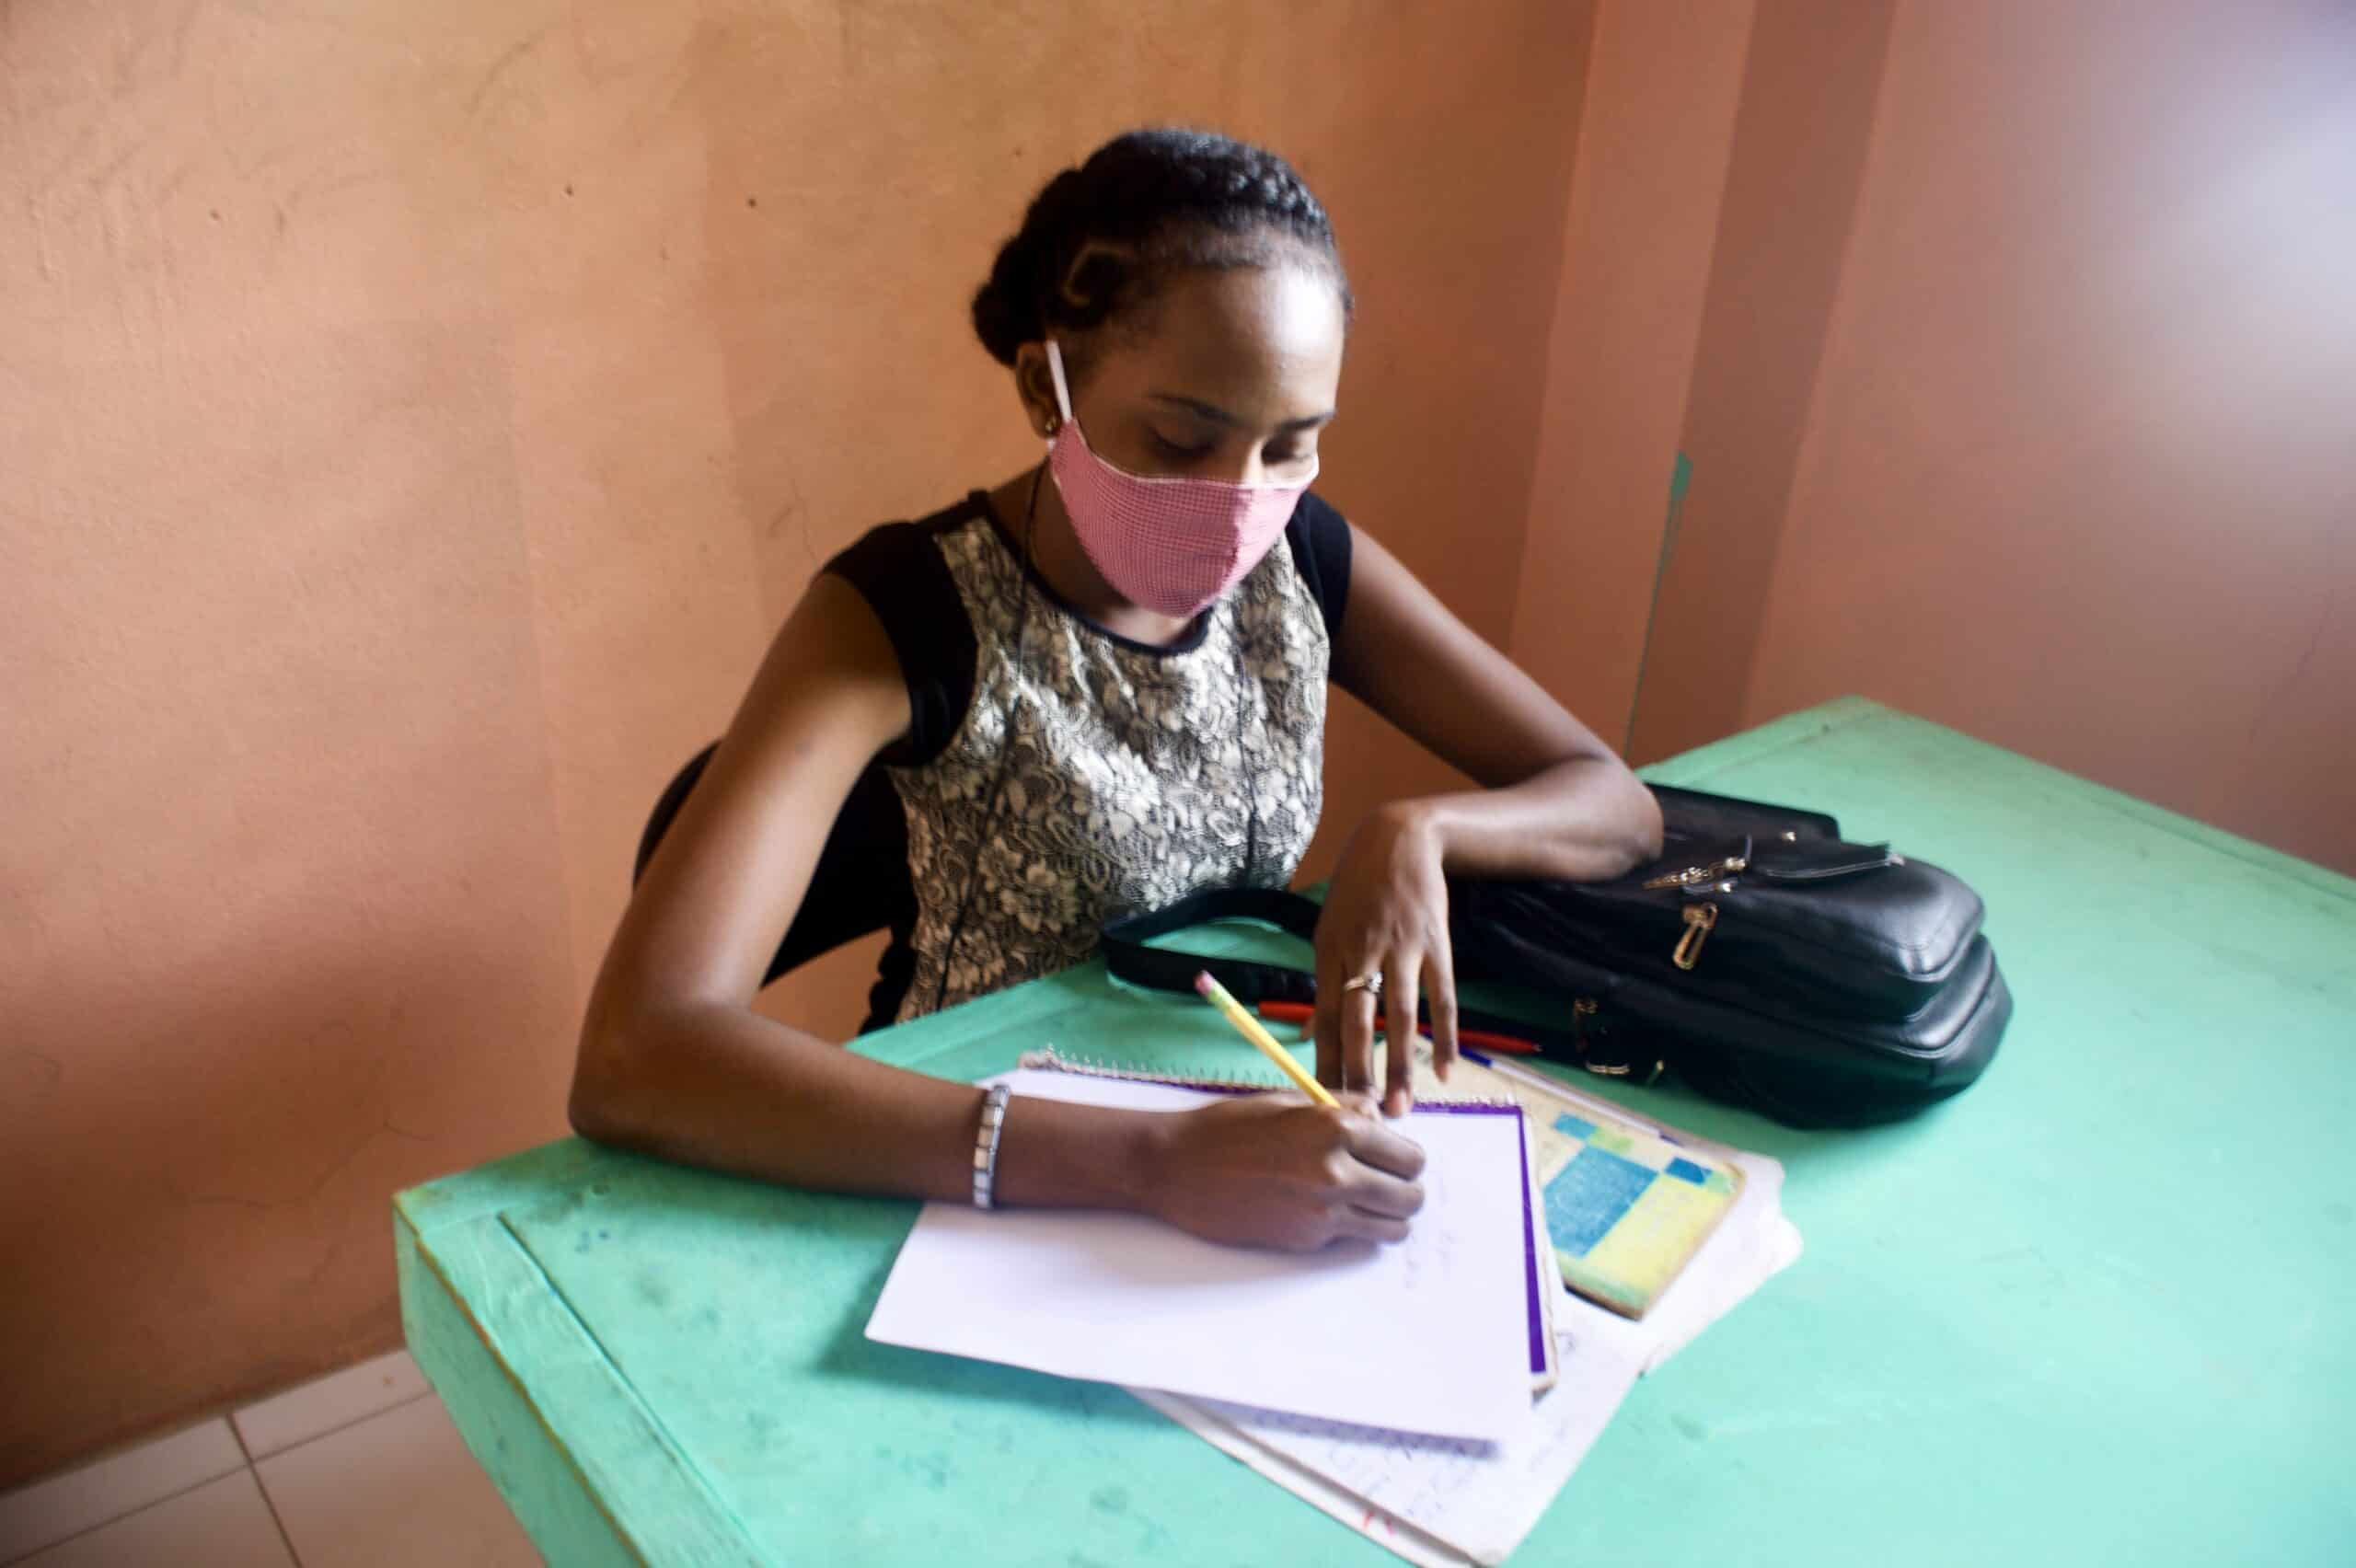 empowered student with mask works at desk with pencil and paper